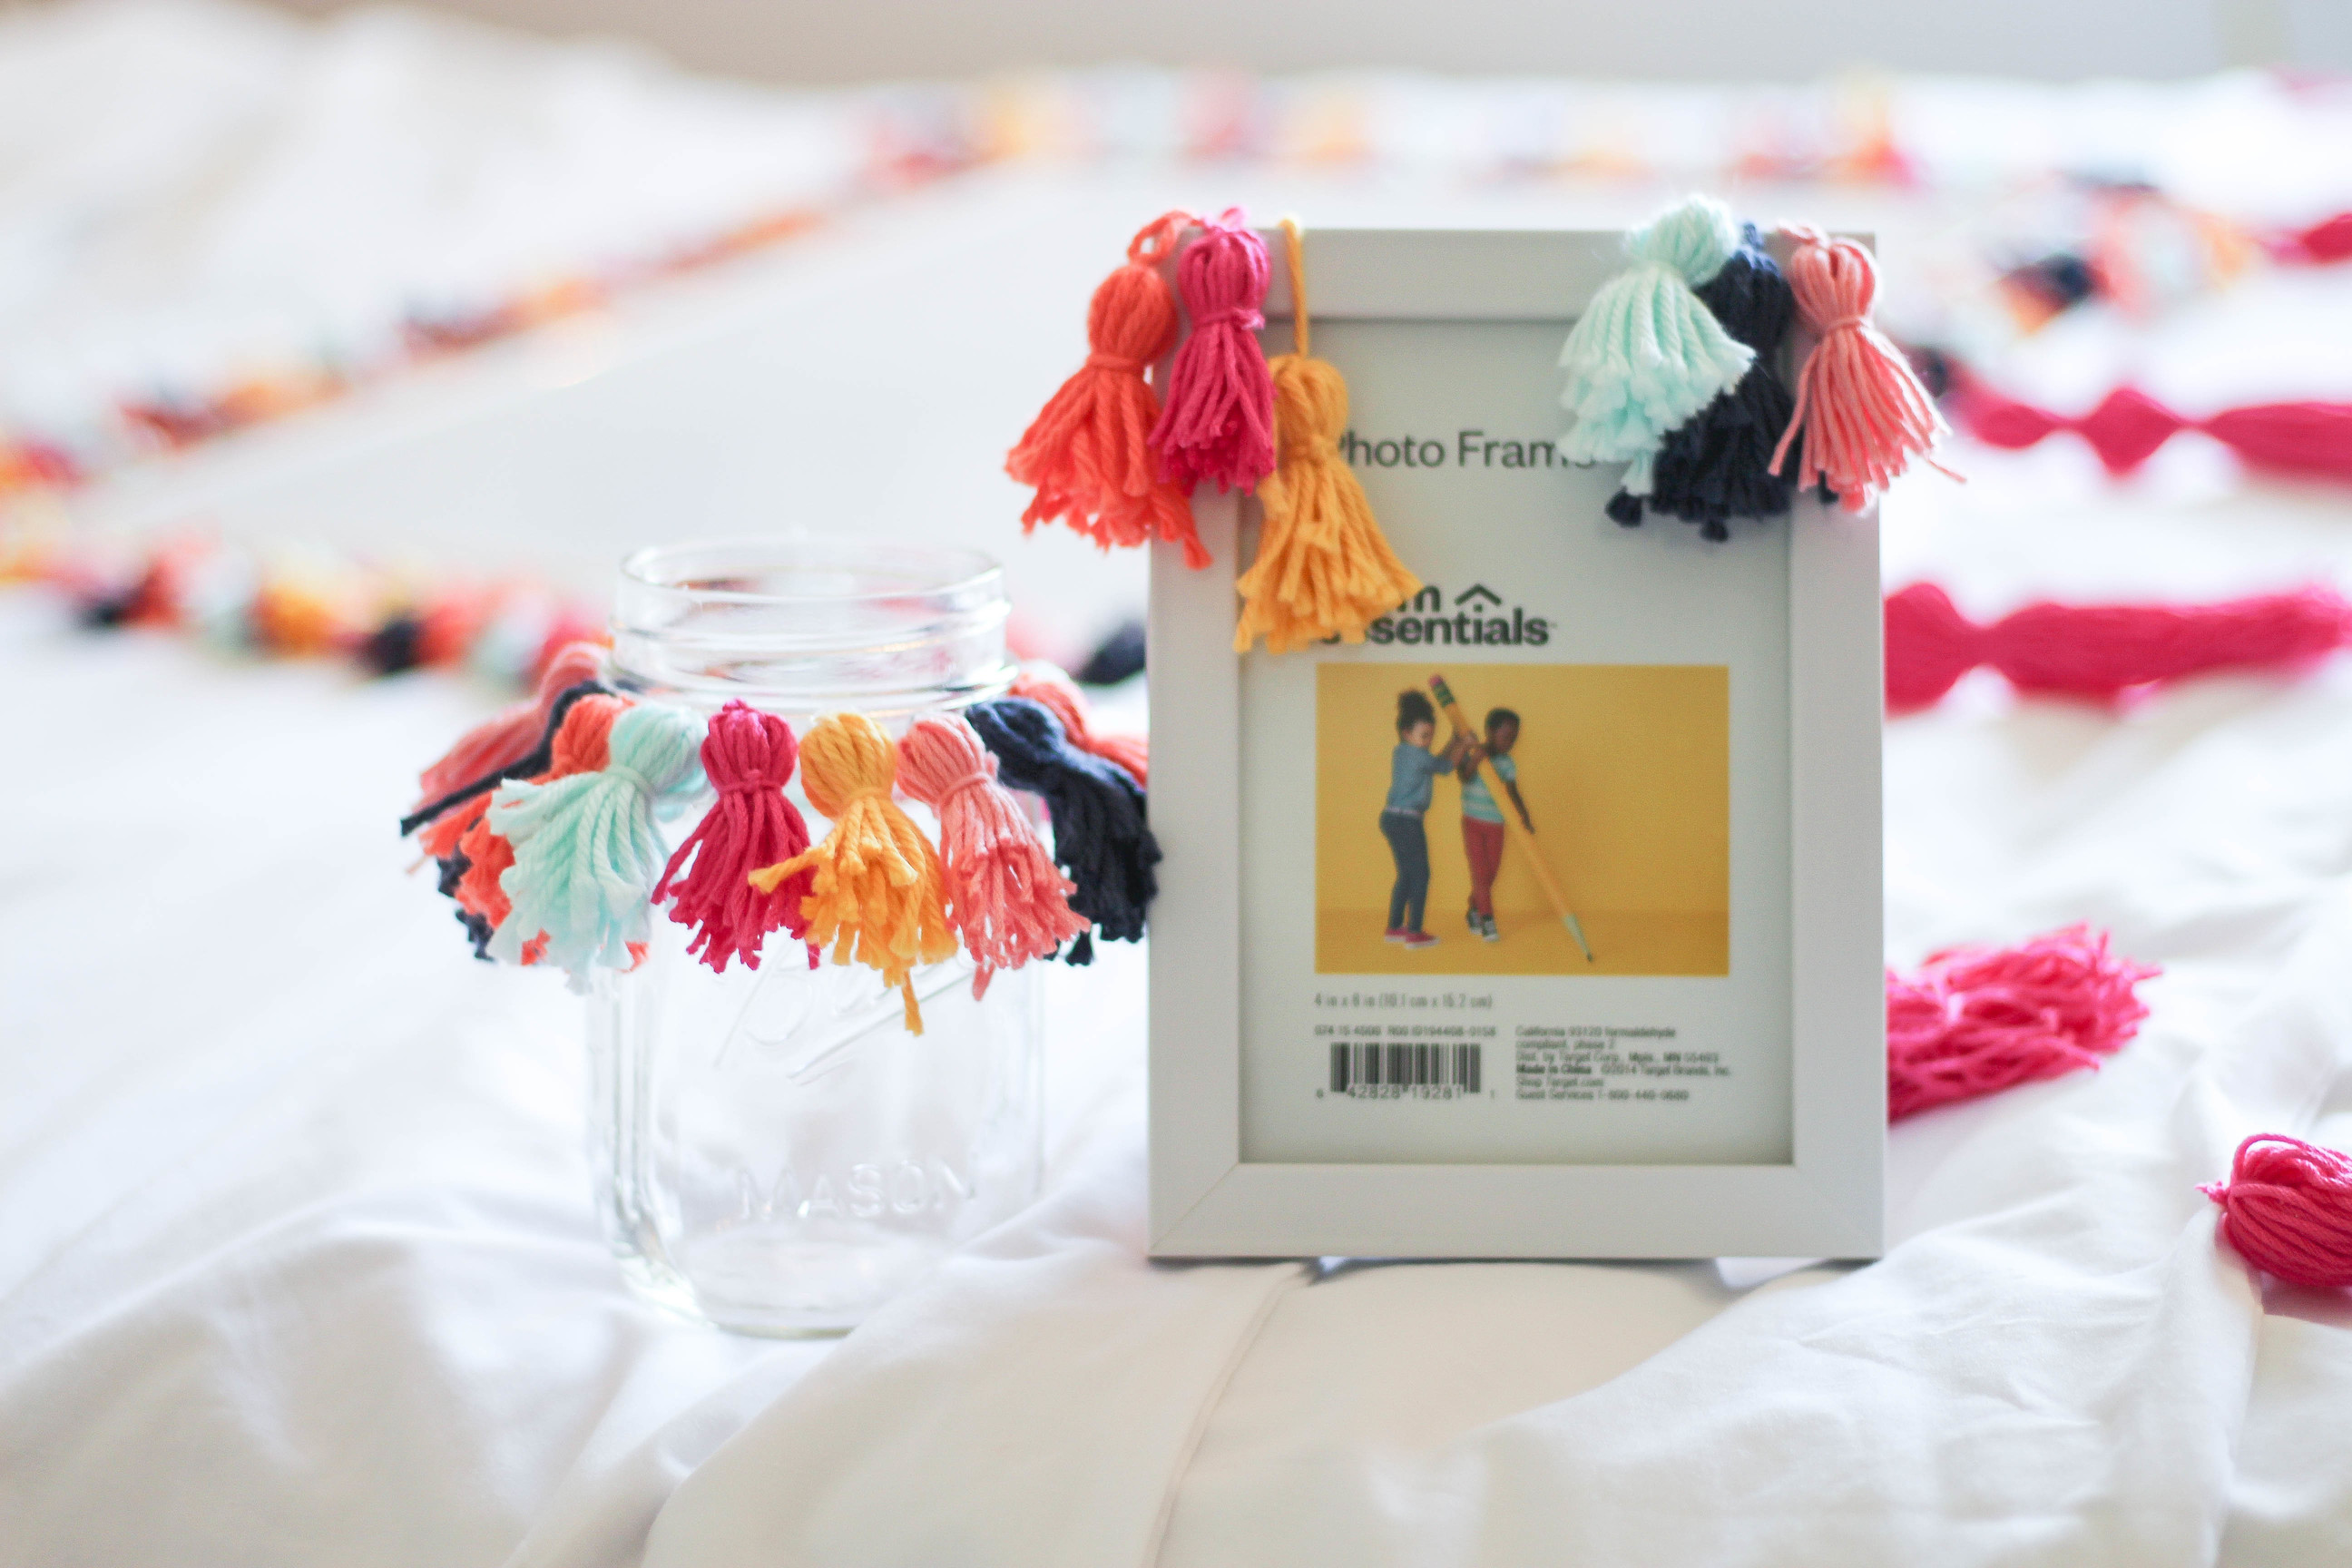 DIY Tassel picture frame and crafts Tassel decor for dorm room by lauren lindmark on daily dose of charm